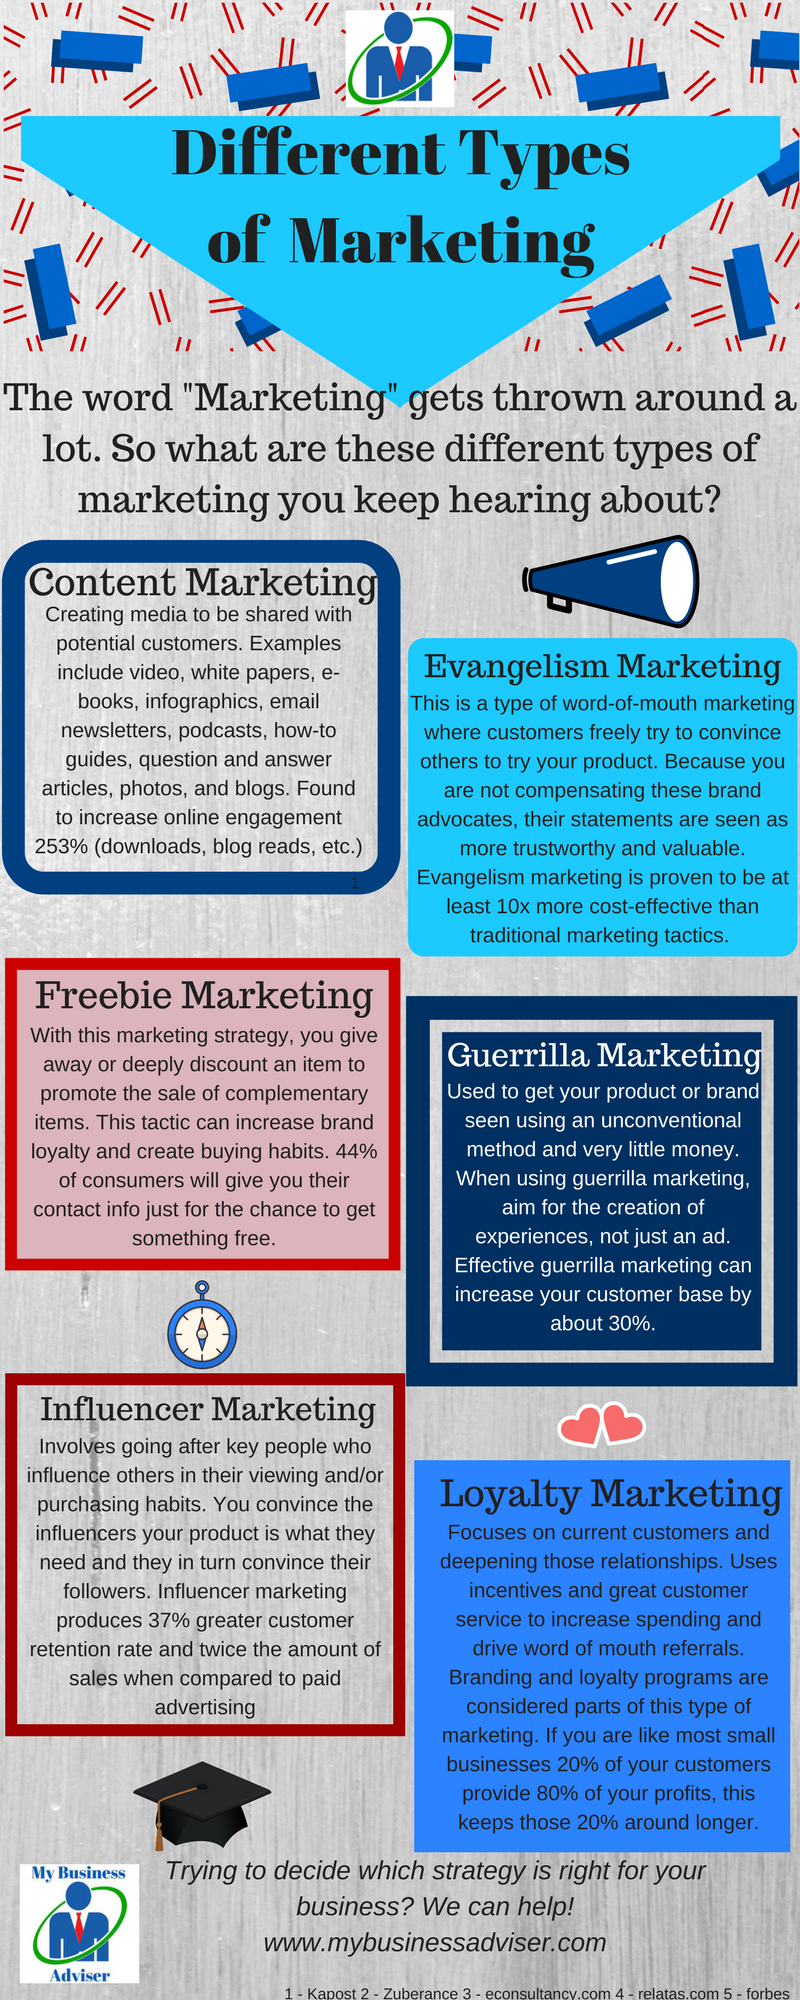 Marketing - DifferentTypes of Marketing